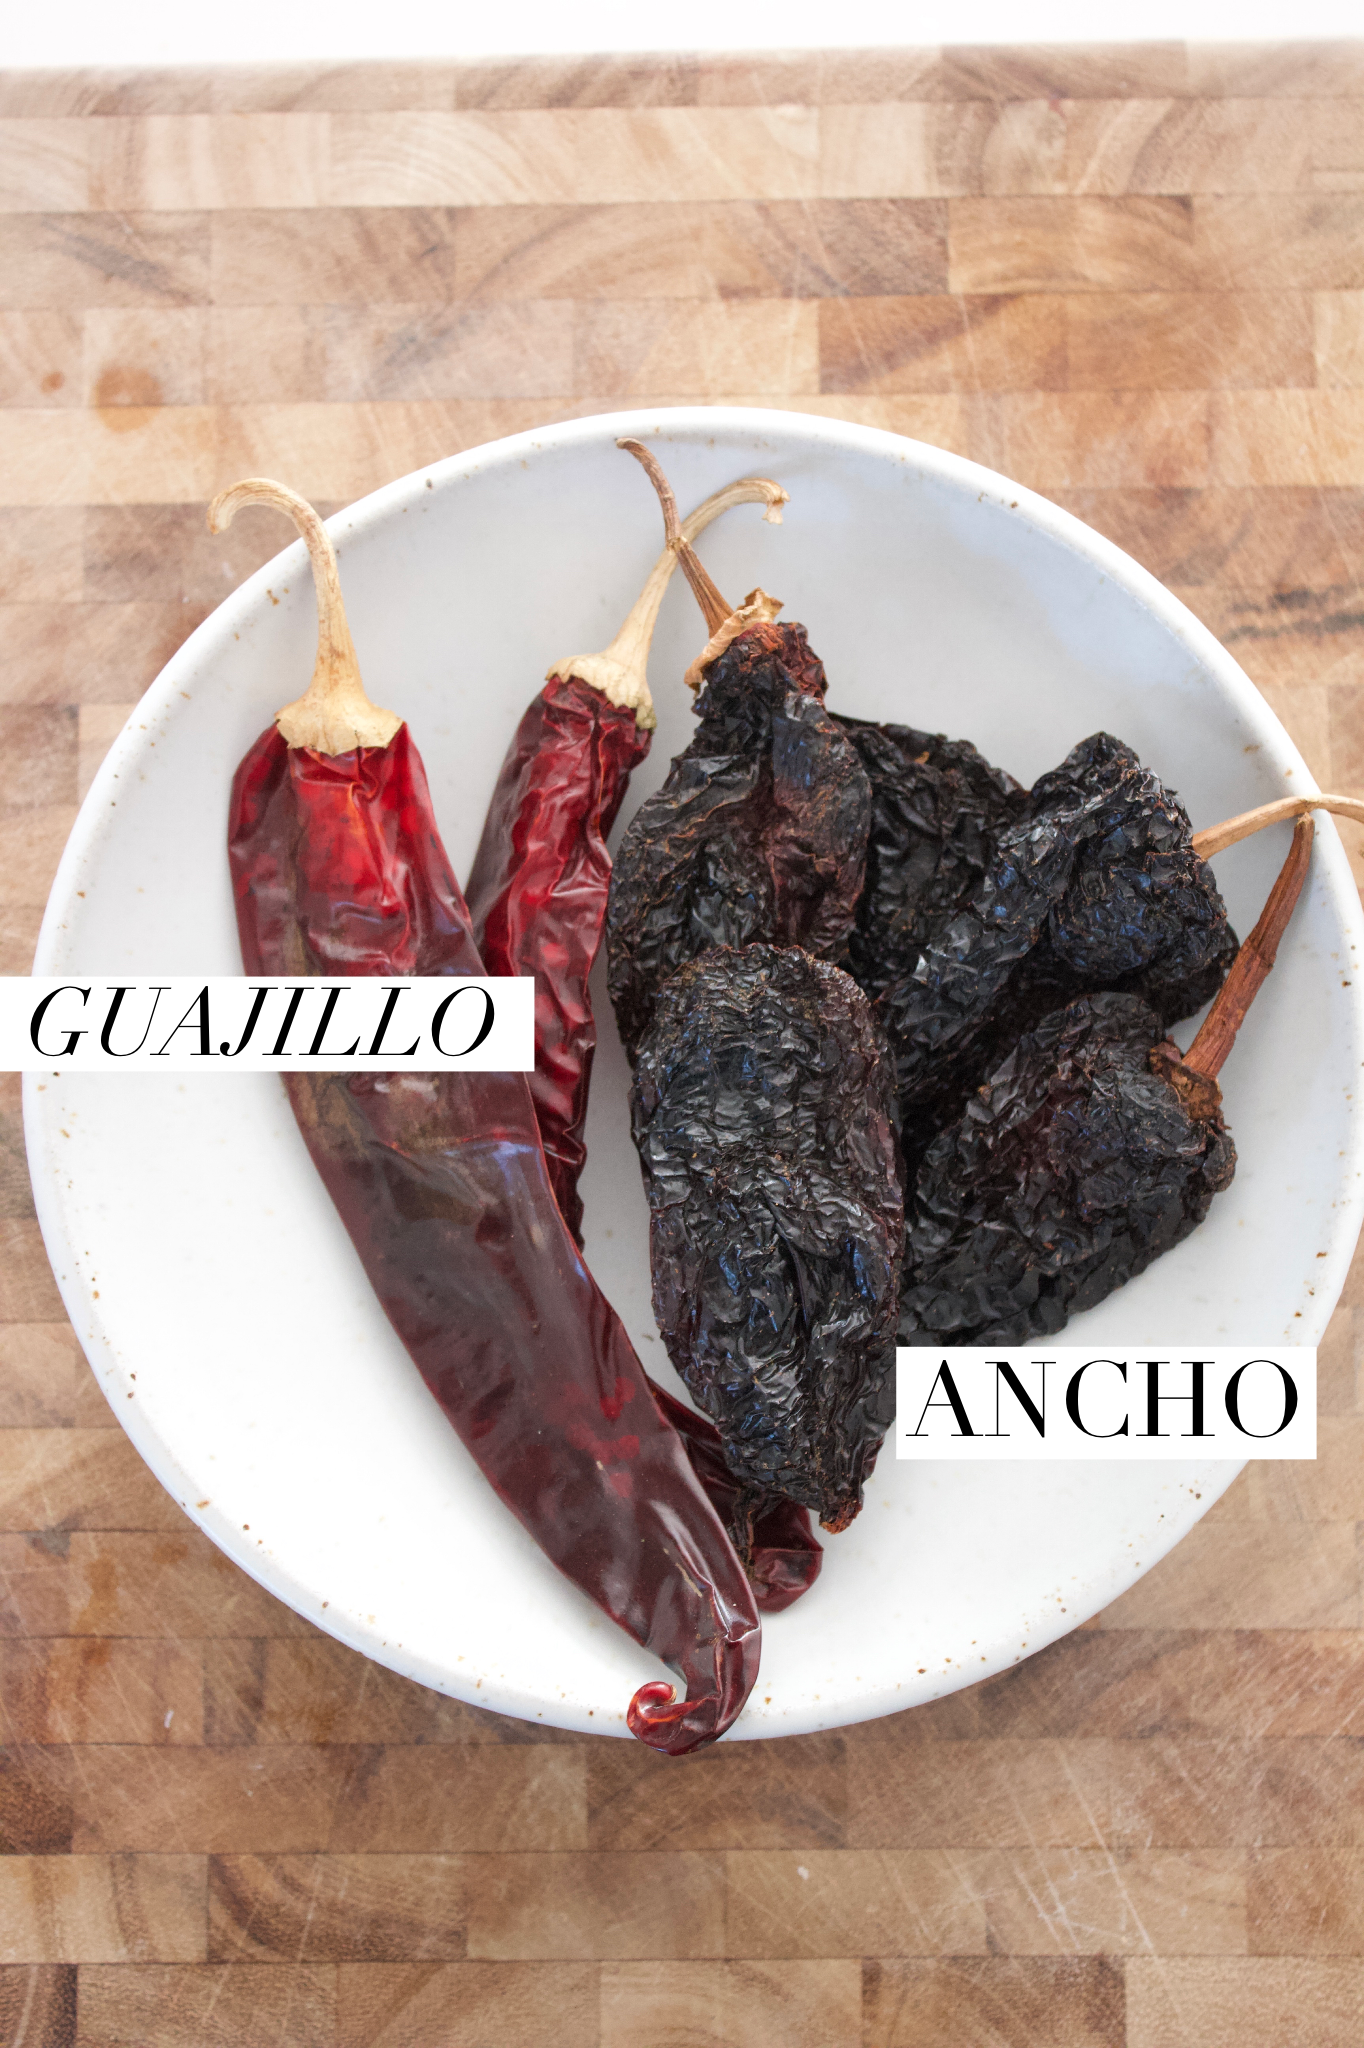 Dried guajillo and ancho chiles in a bowl on a cutting board